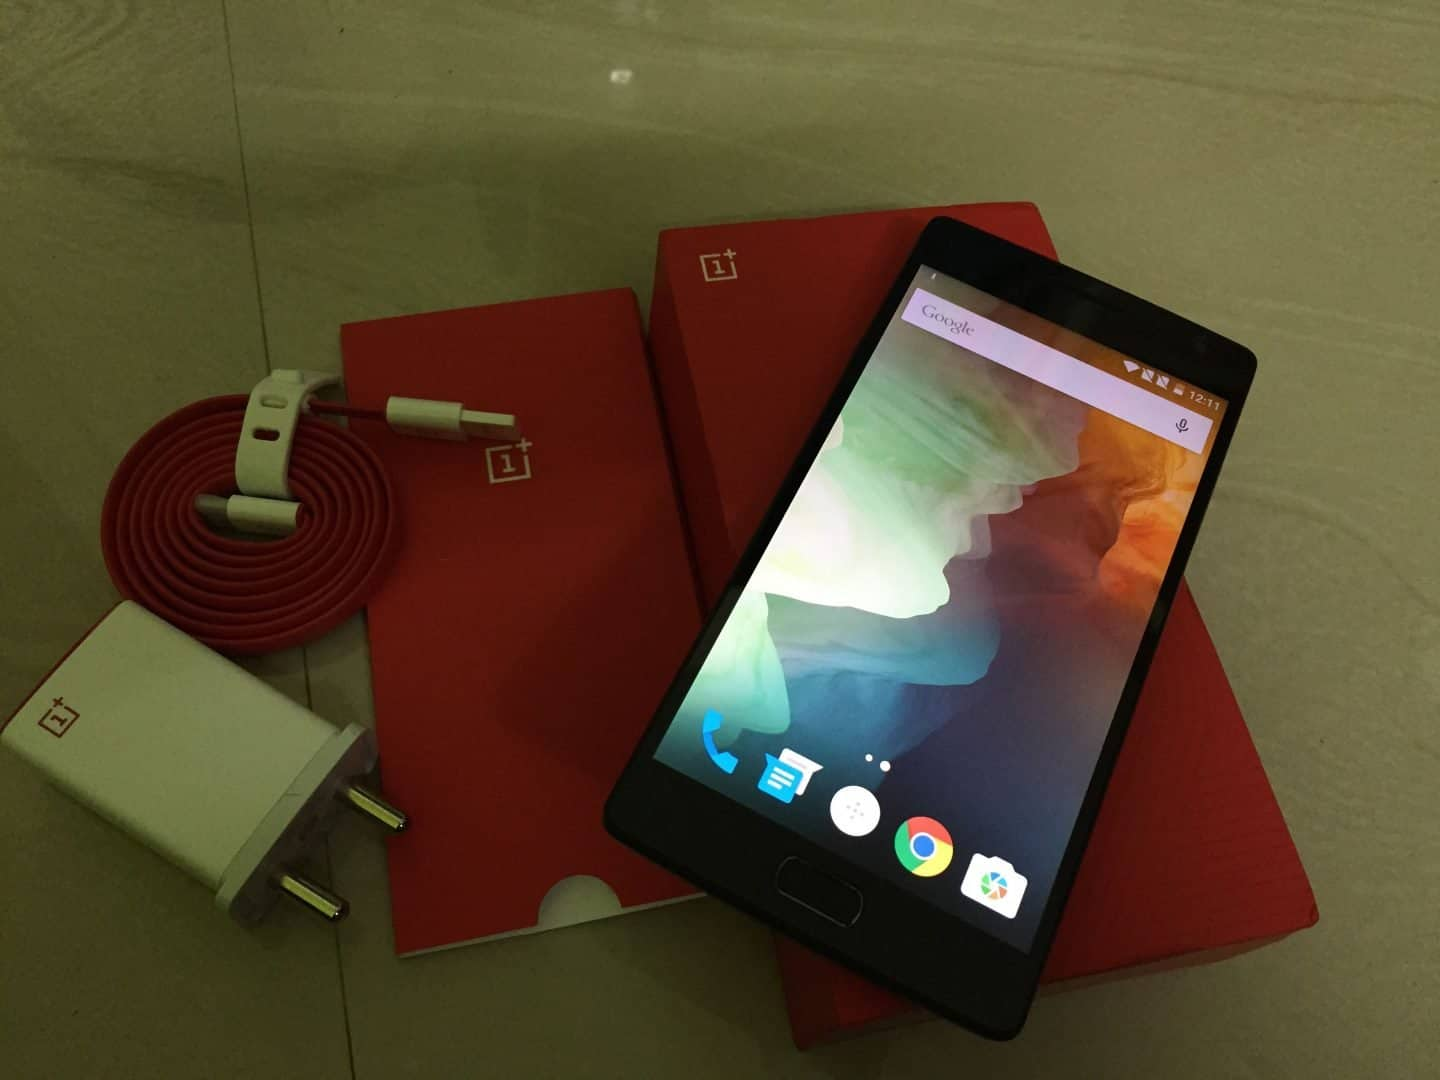 OnePlus 2 Review: Is it really the most hyped smartphone of 2015? - 11